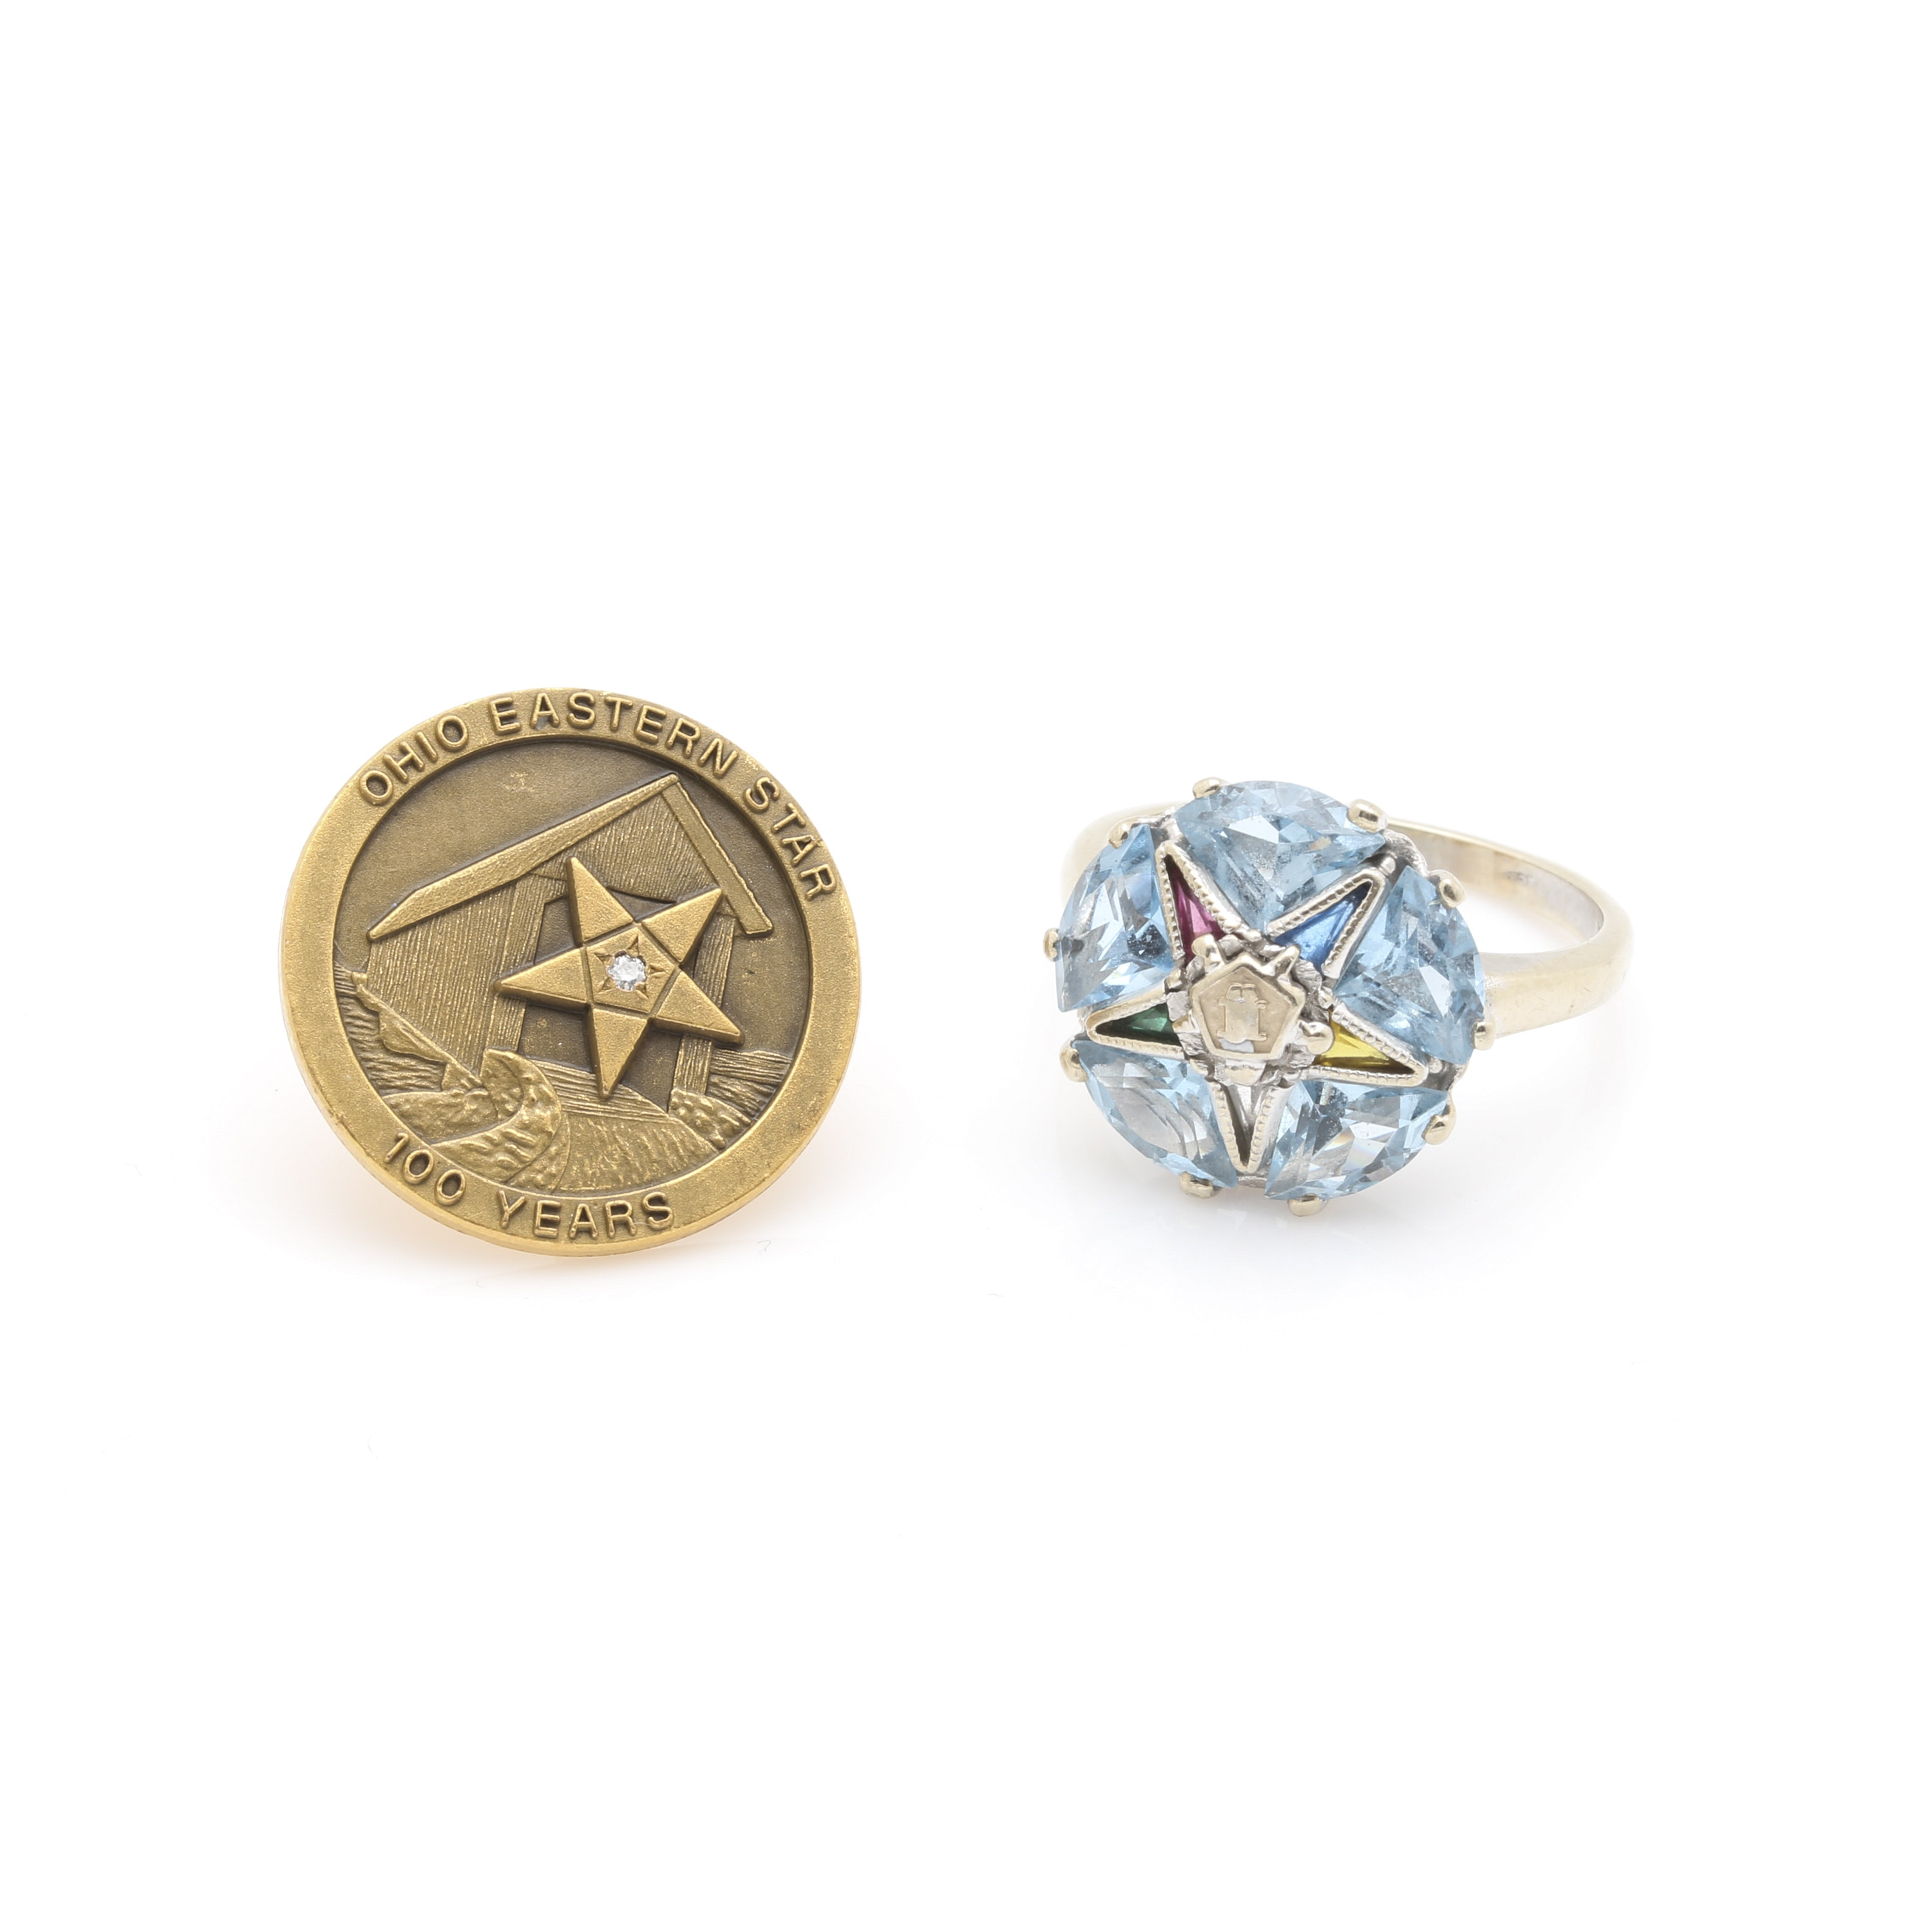 Order of The Eastern Star Masonic 10K White Gold Ring and Gold Tone Pin